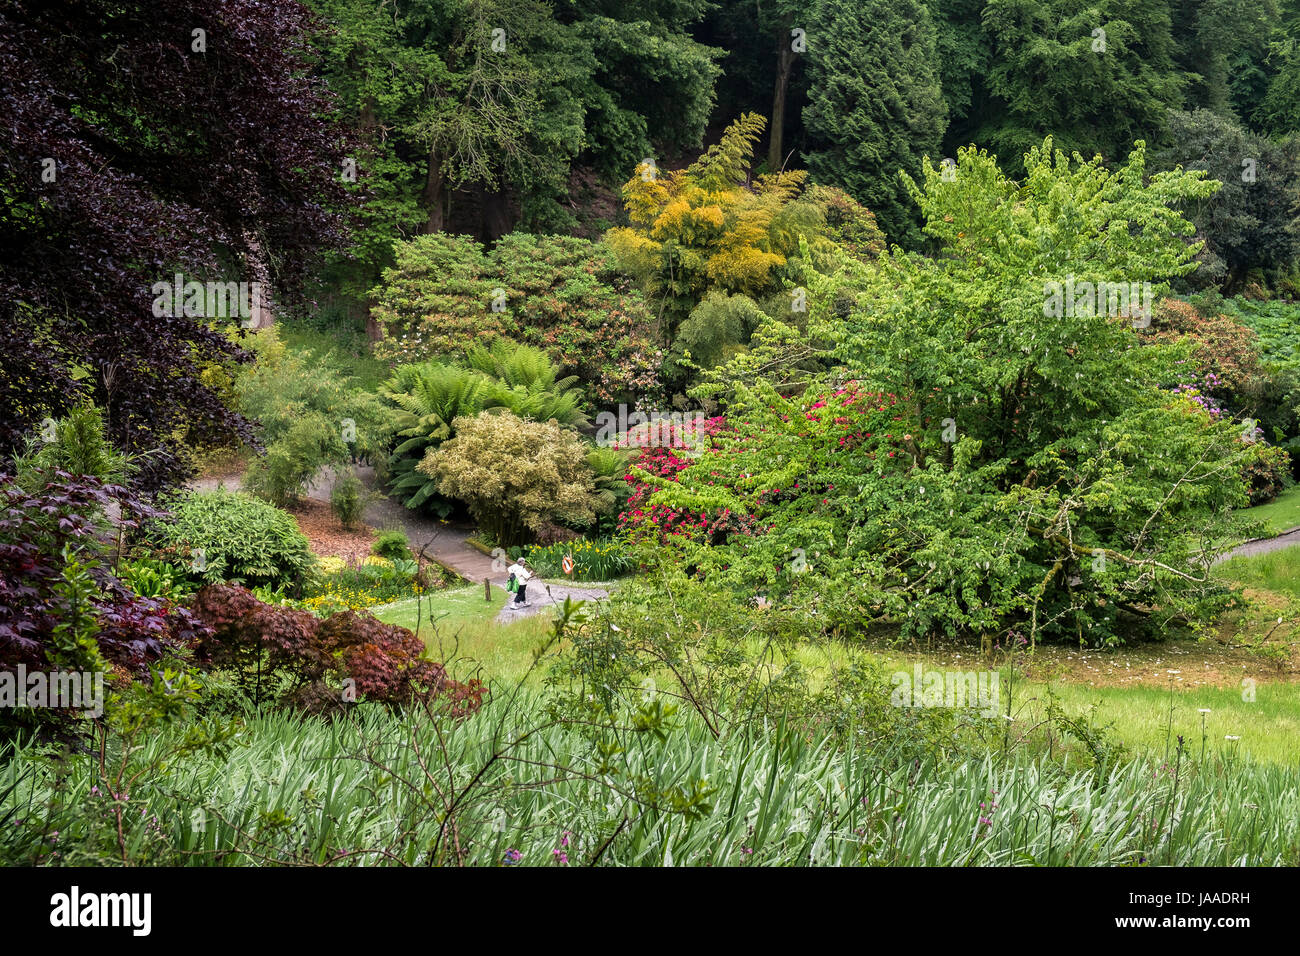 Lush foliage at the sub-tropical Trebah Garden in Cornwall. - Stock Image